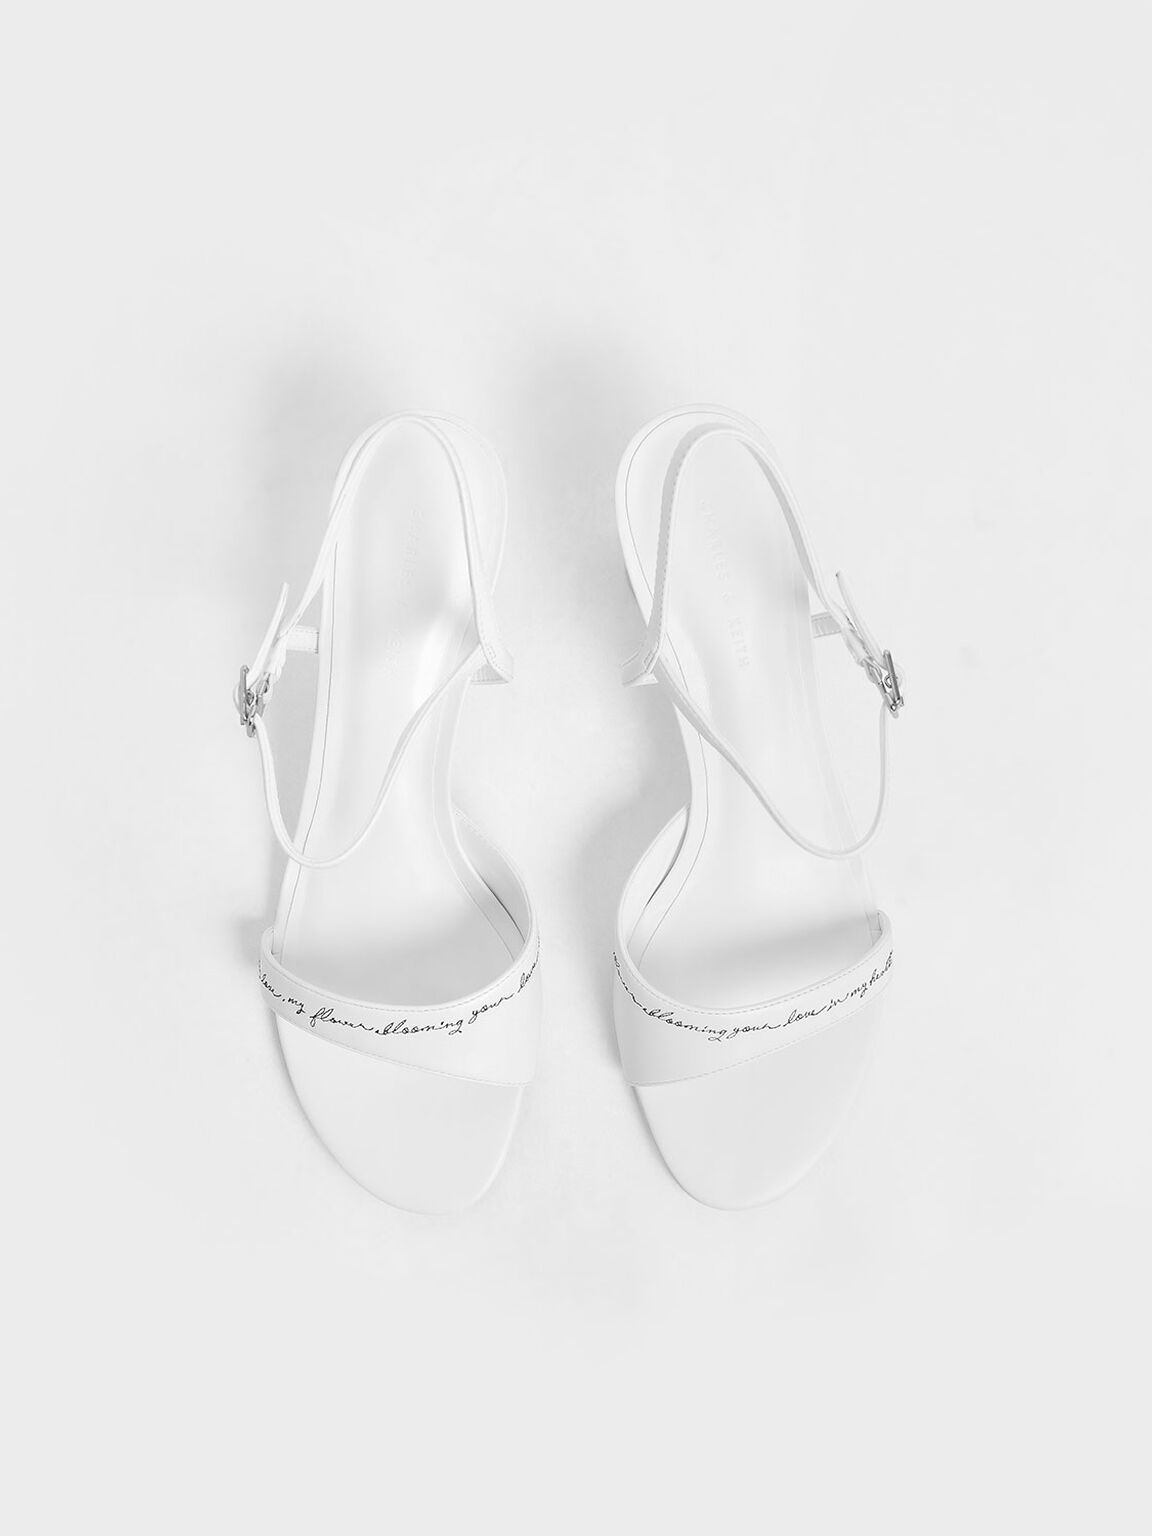 Embroidered Lucite Sculptural Heel Sandals, White, hi-res